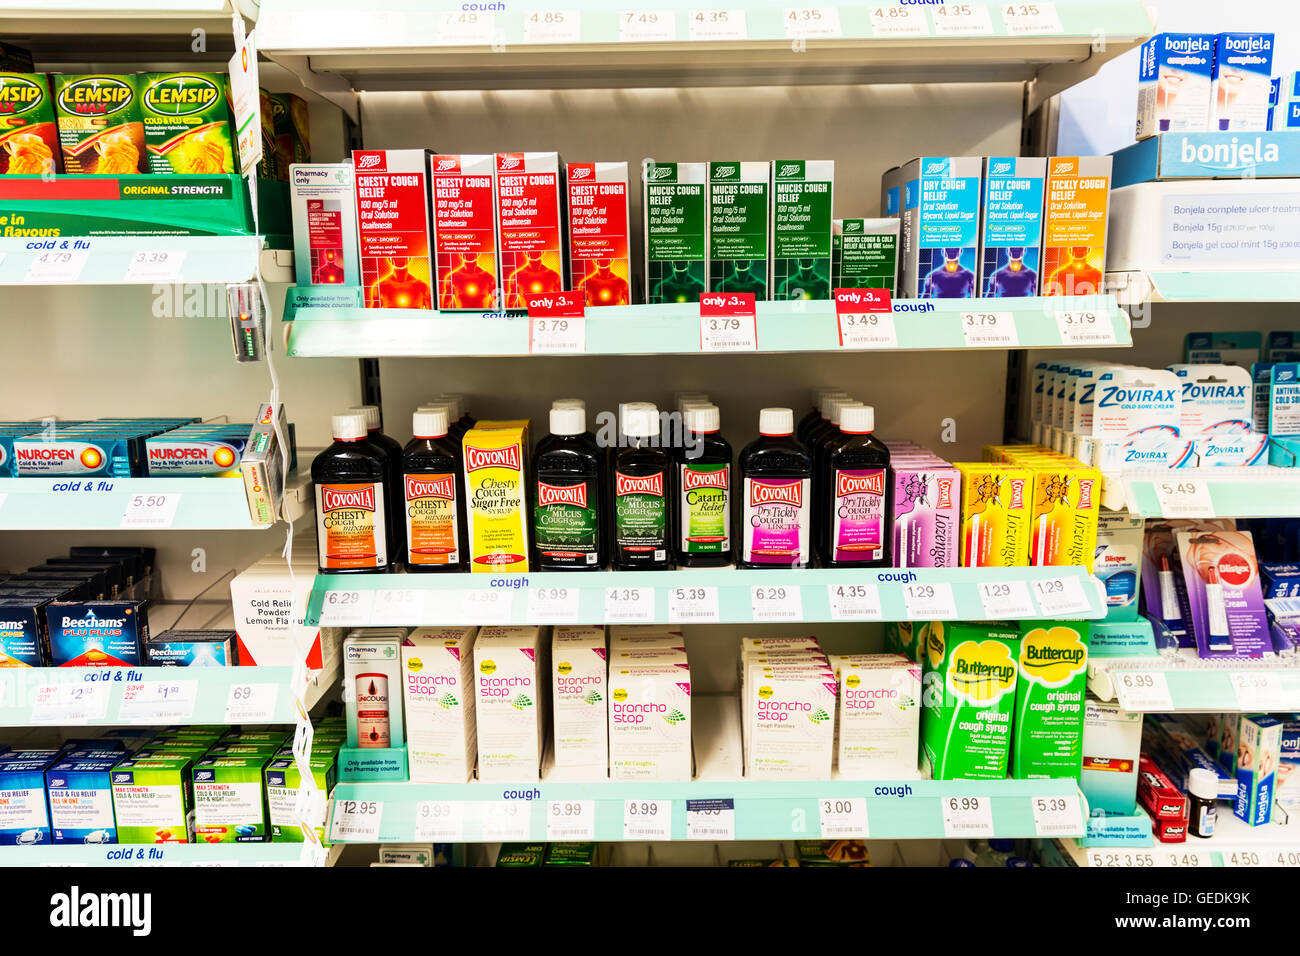 Cough medicine medicines products cough mixture Covonia brand brands types type chemist shop display UK England - Stock Image